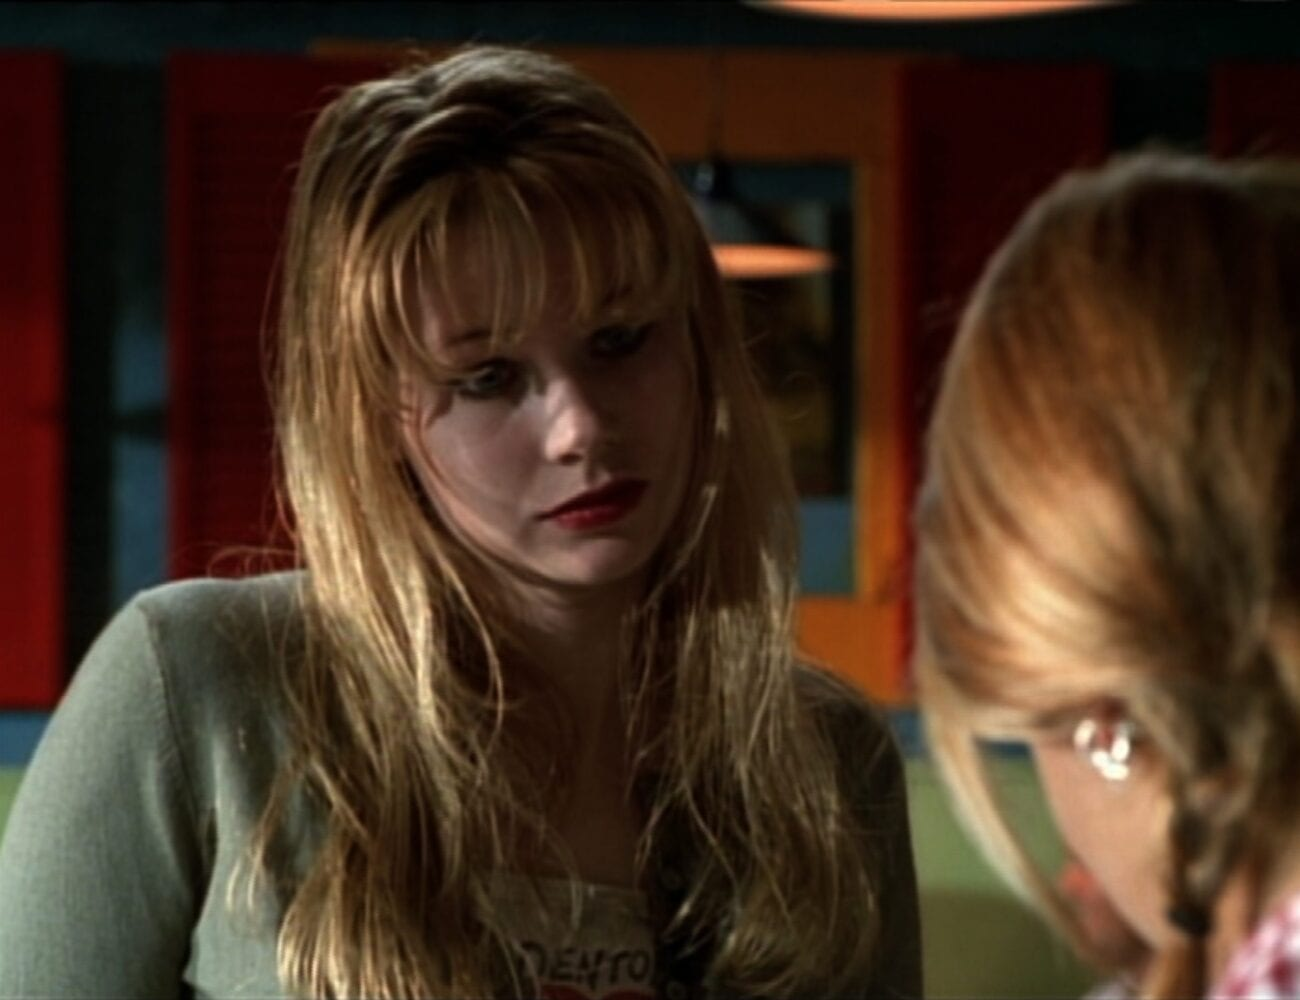 In the diner, Lily looks at Buffy, concerned